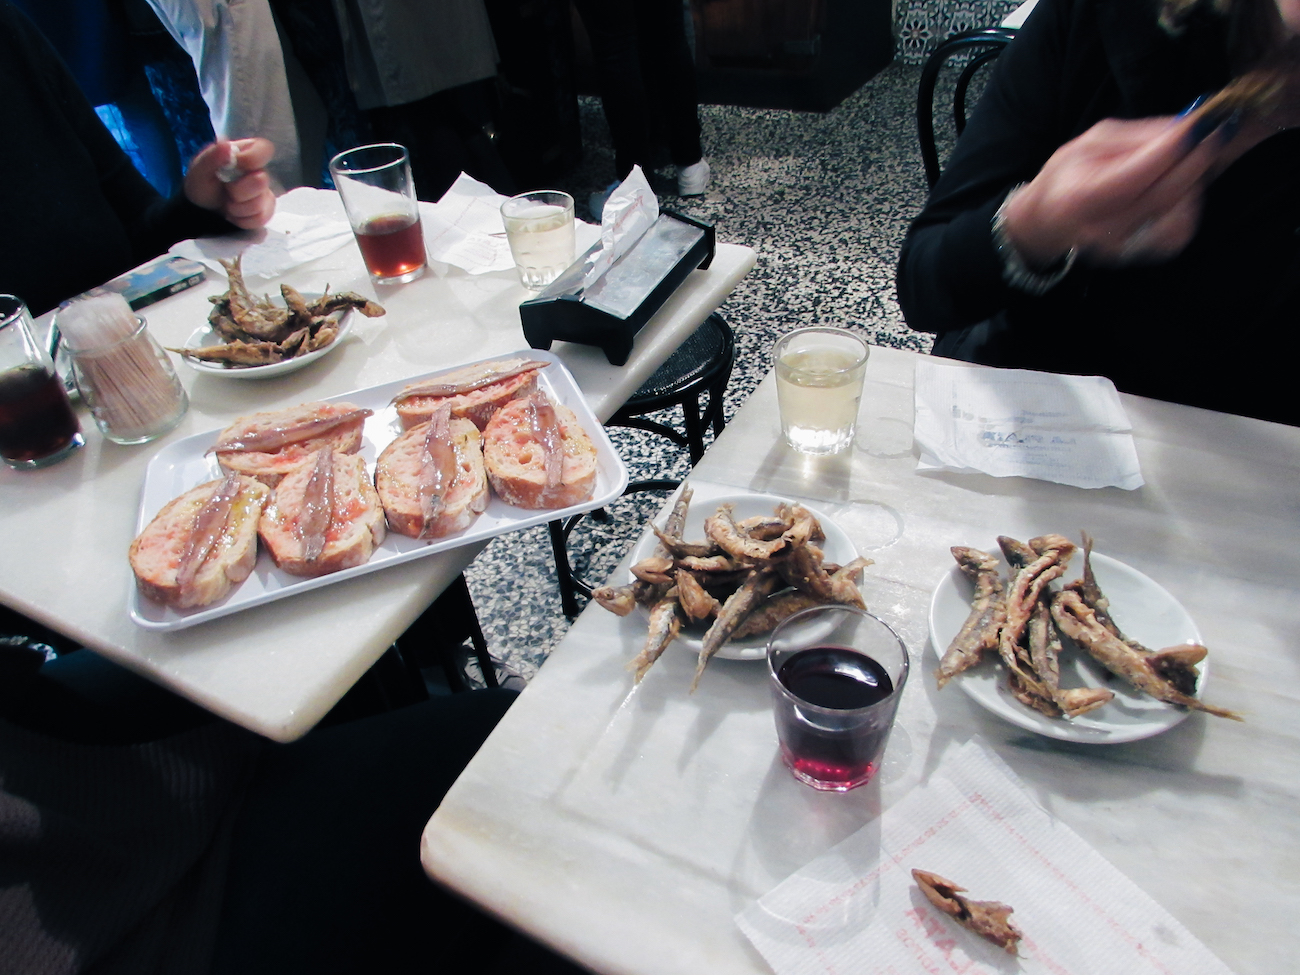 Barcelona Food Lovers Company Food Tour in Barcelona's Gothic Quarter